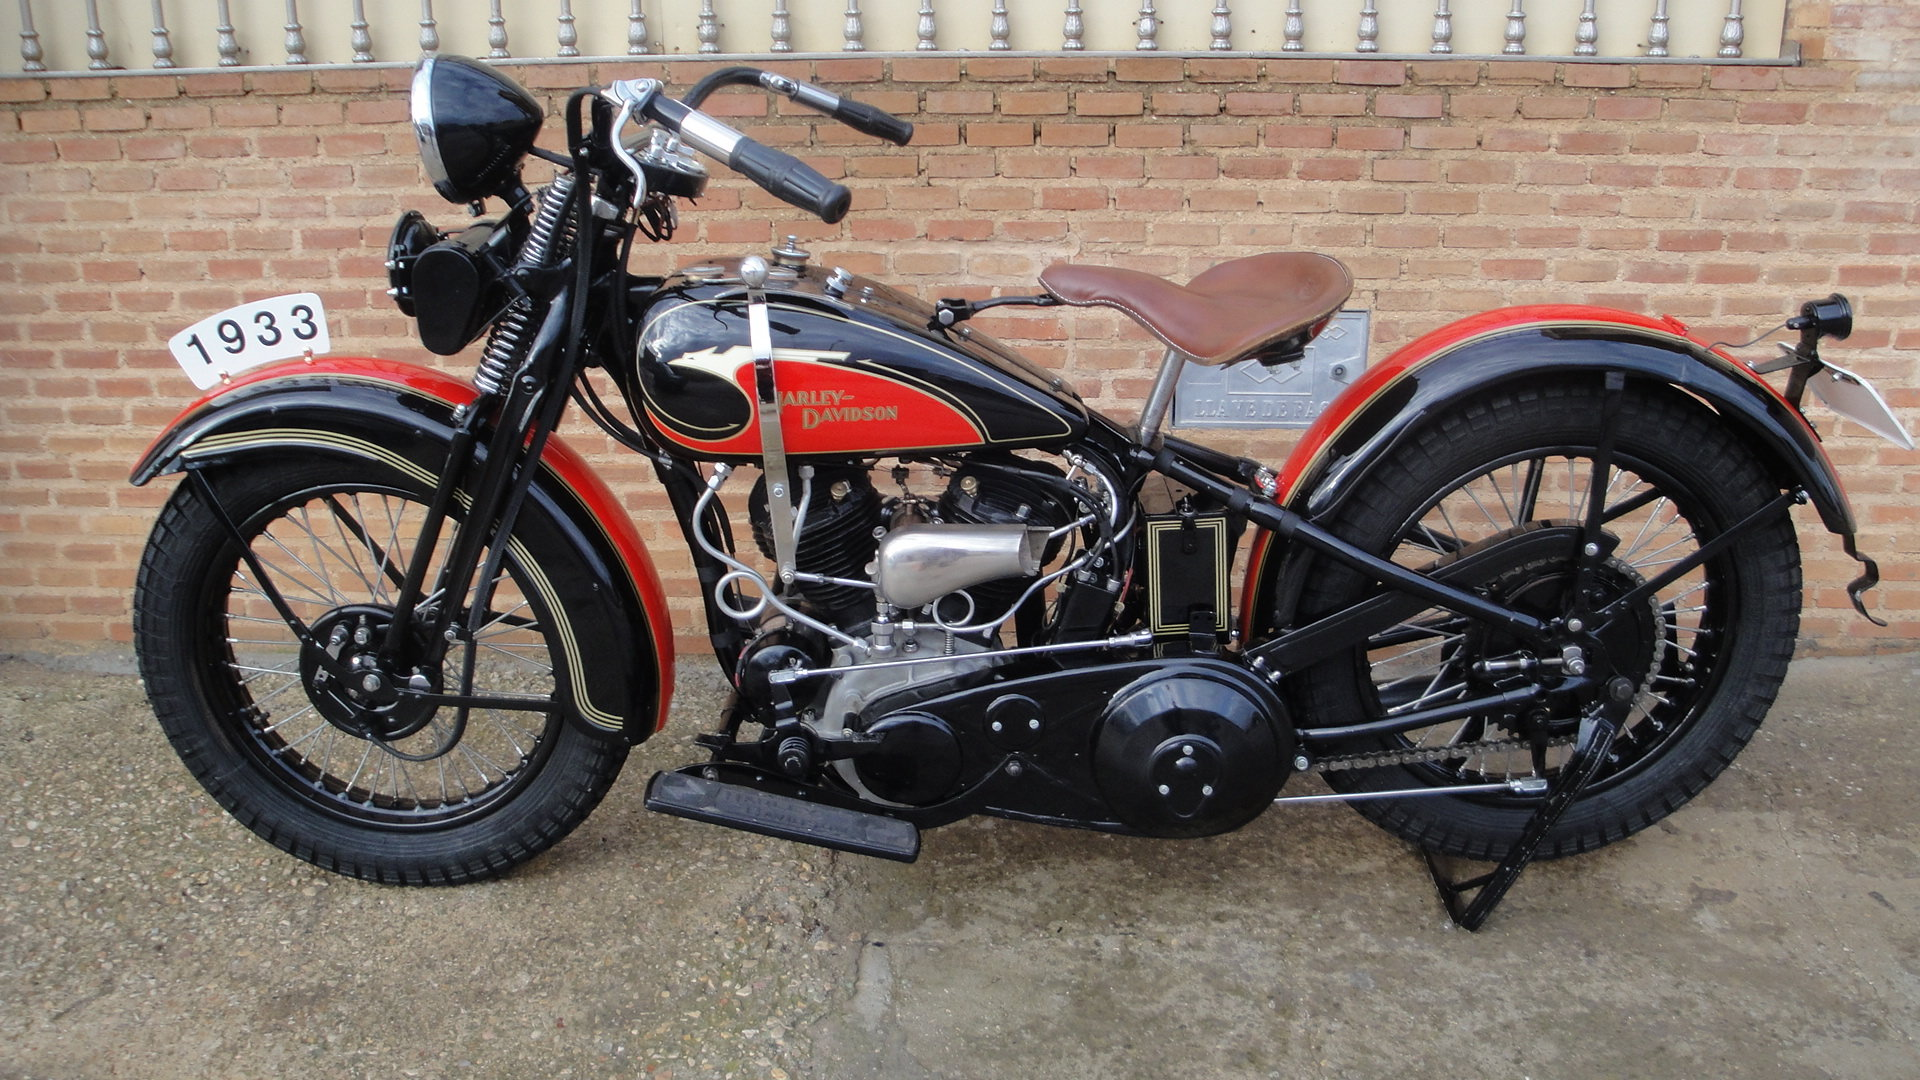 """1933 Harley davidson 33vf 74"""" special model For Sale (picture 2 of 6)"""